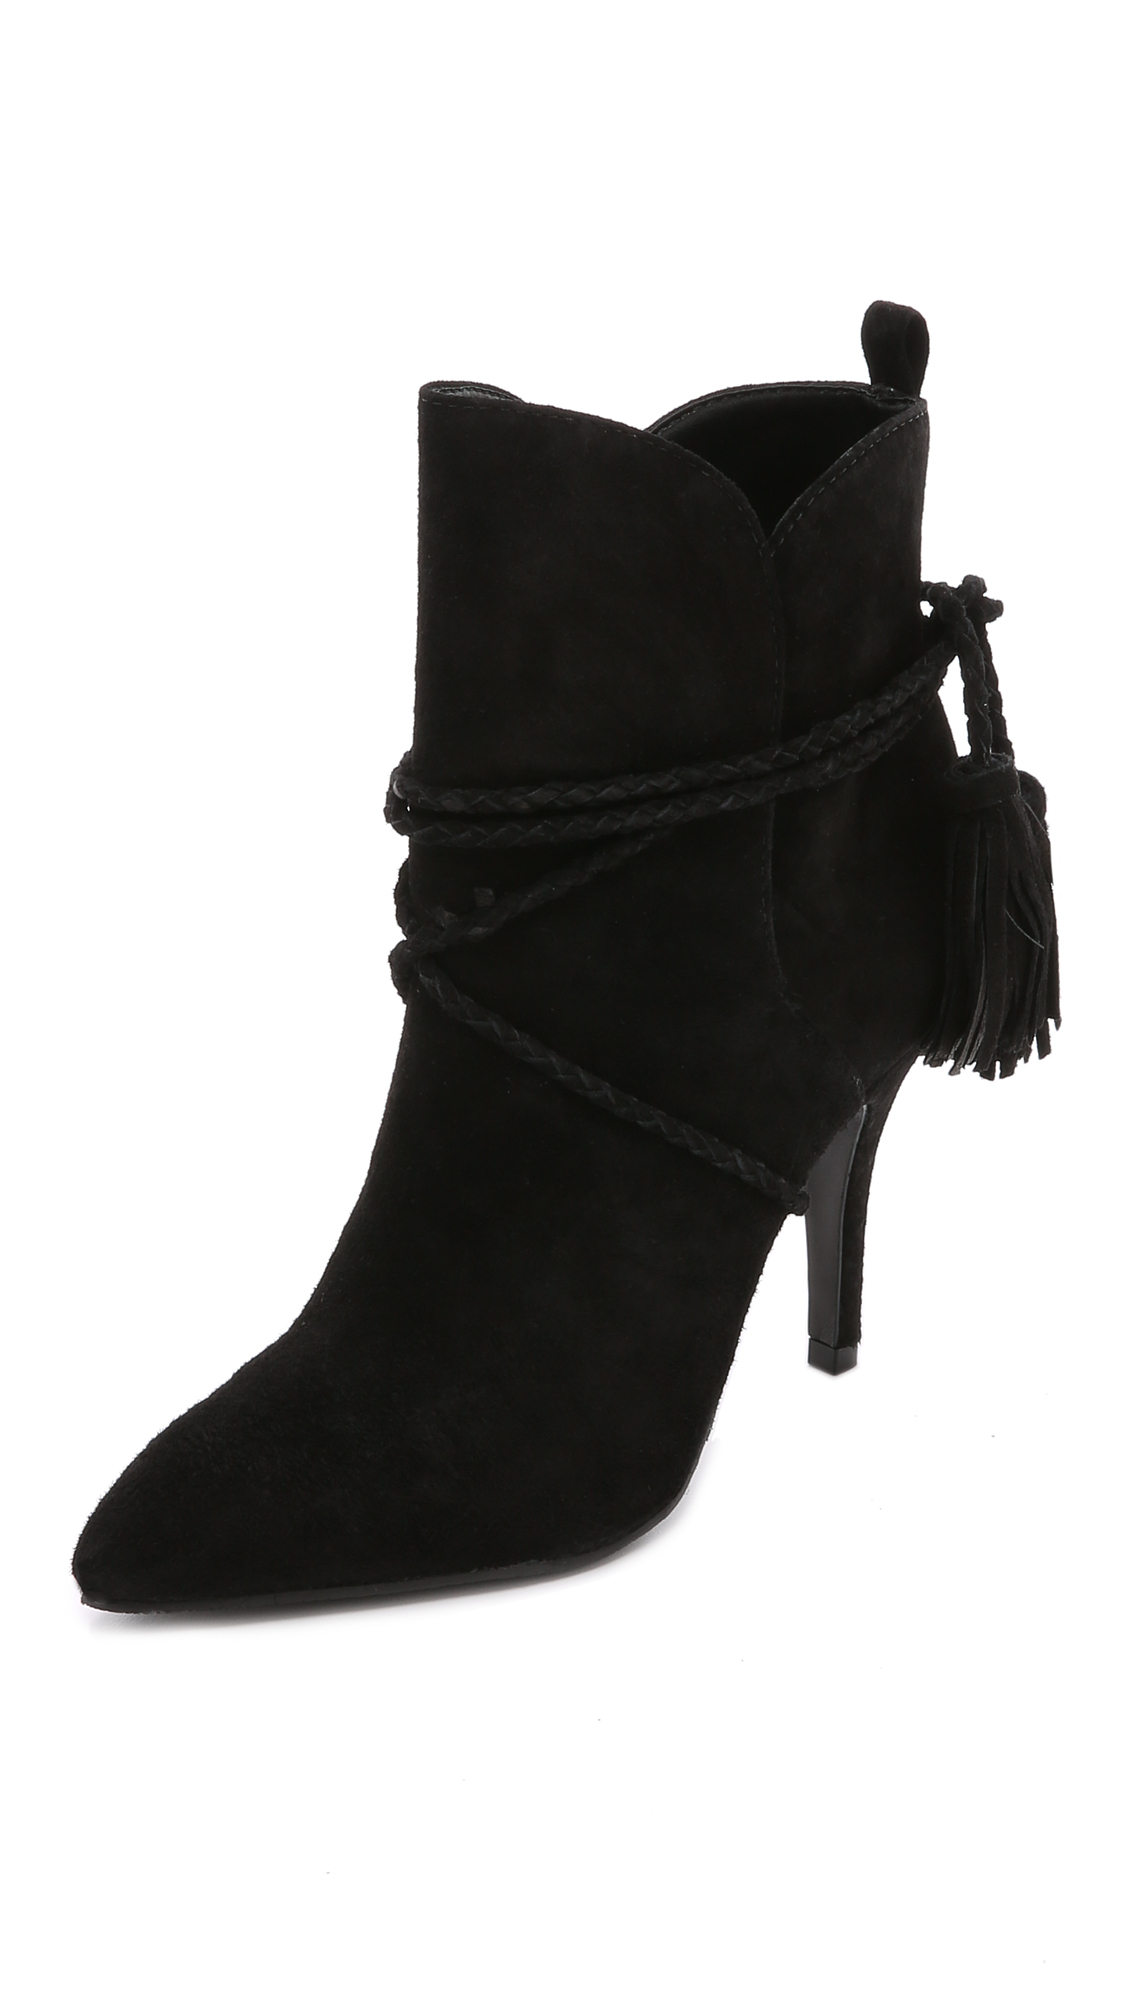 Schutz Fadhila Ankle Wrap Booties in Black | Lyst